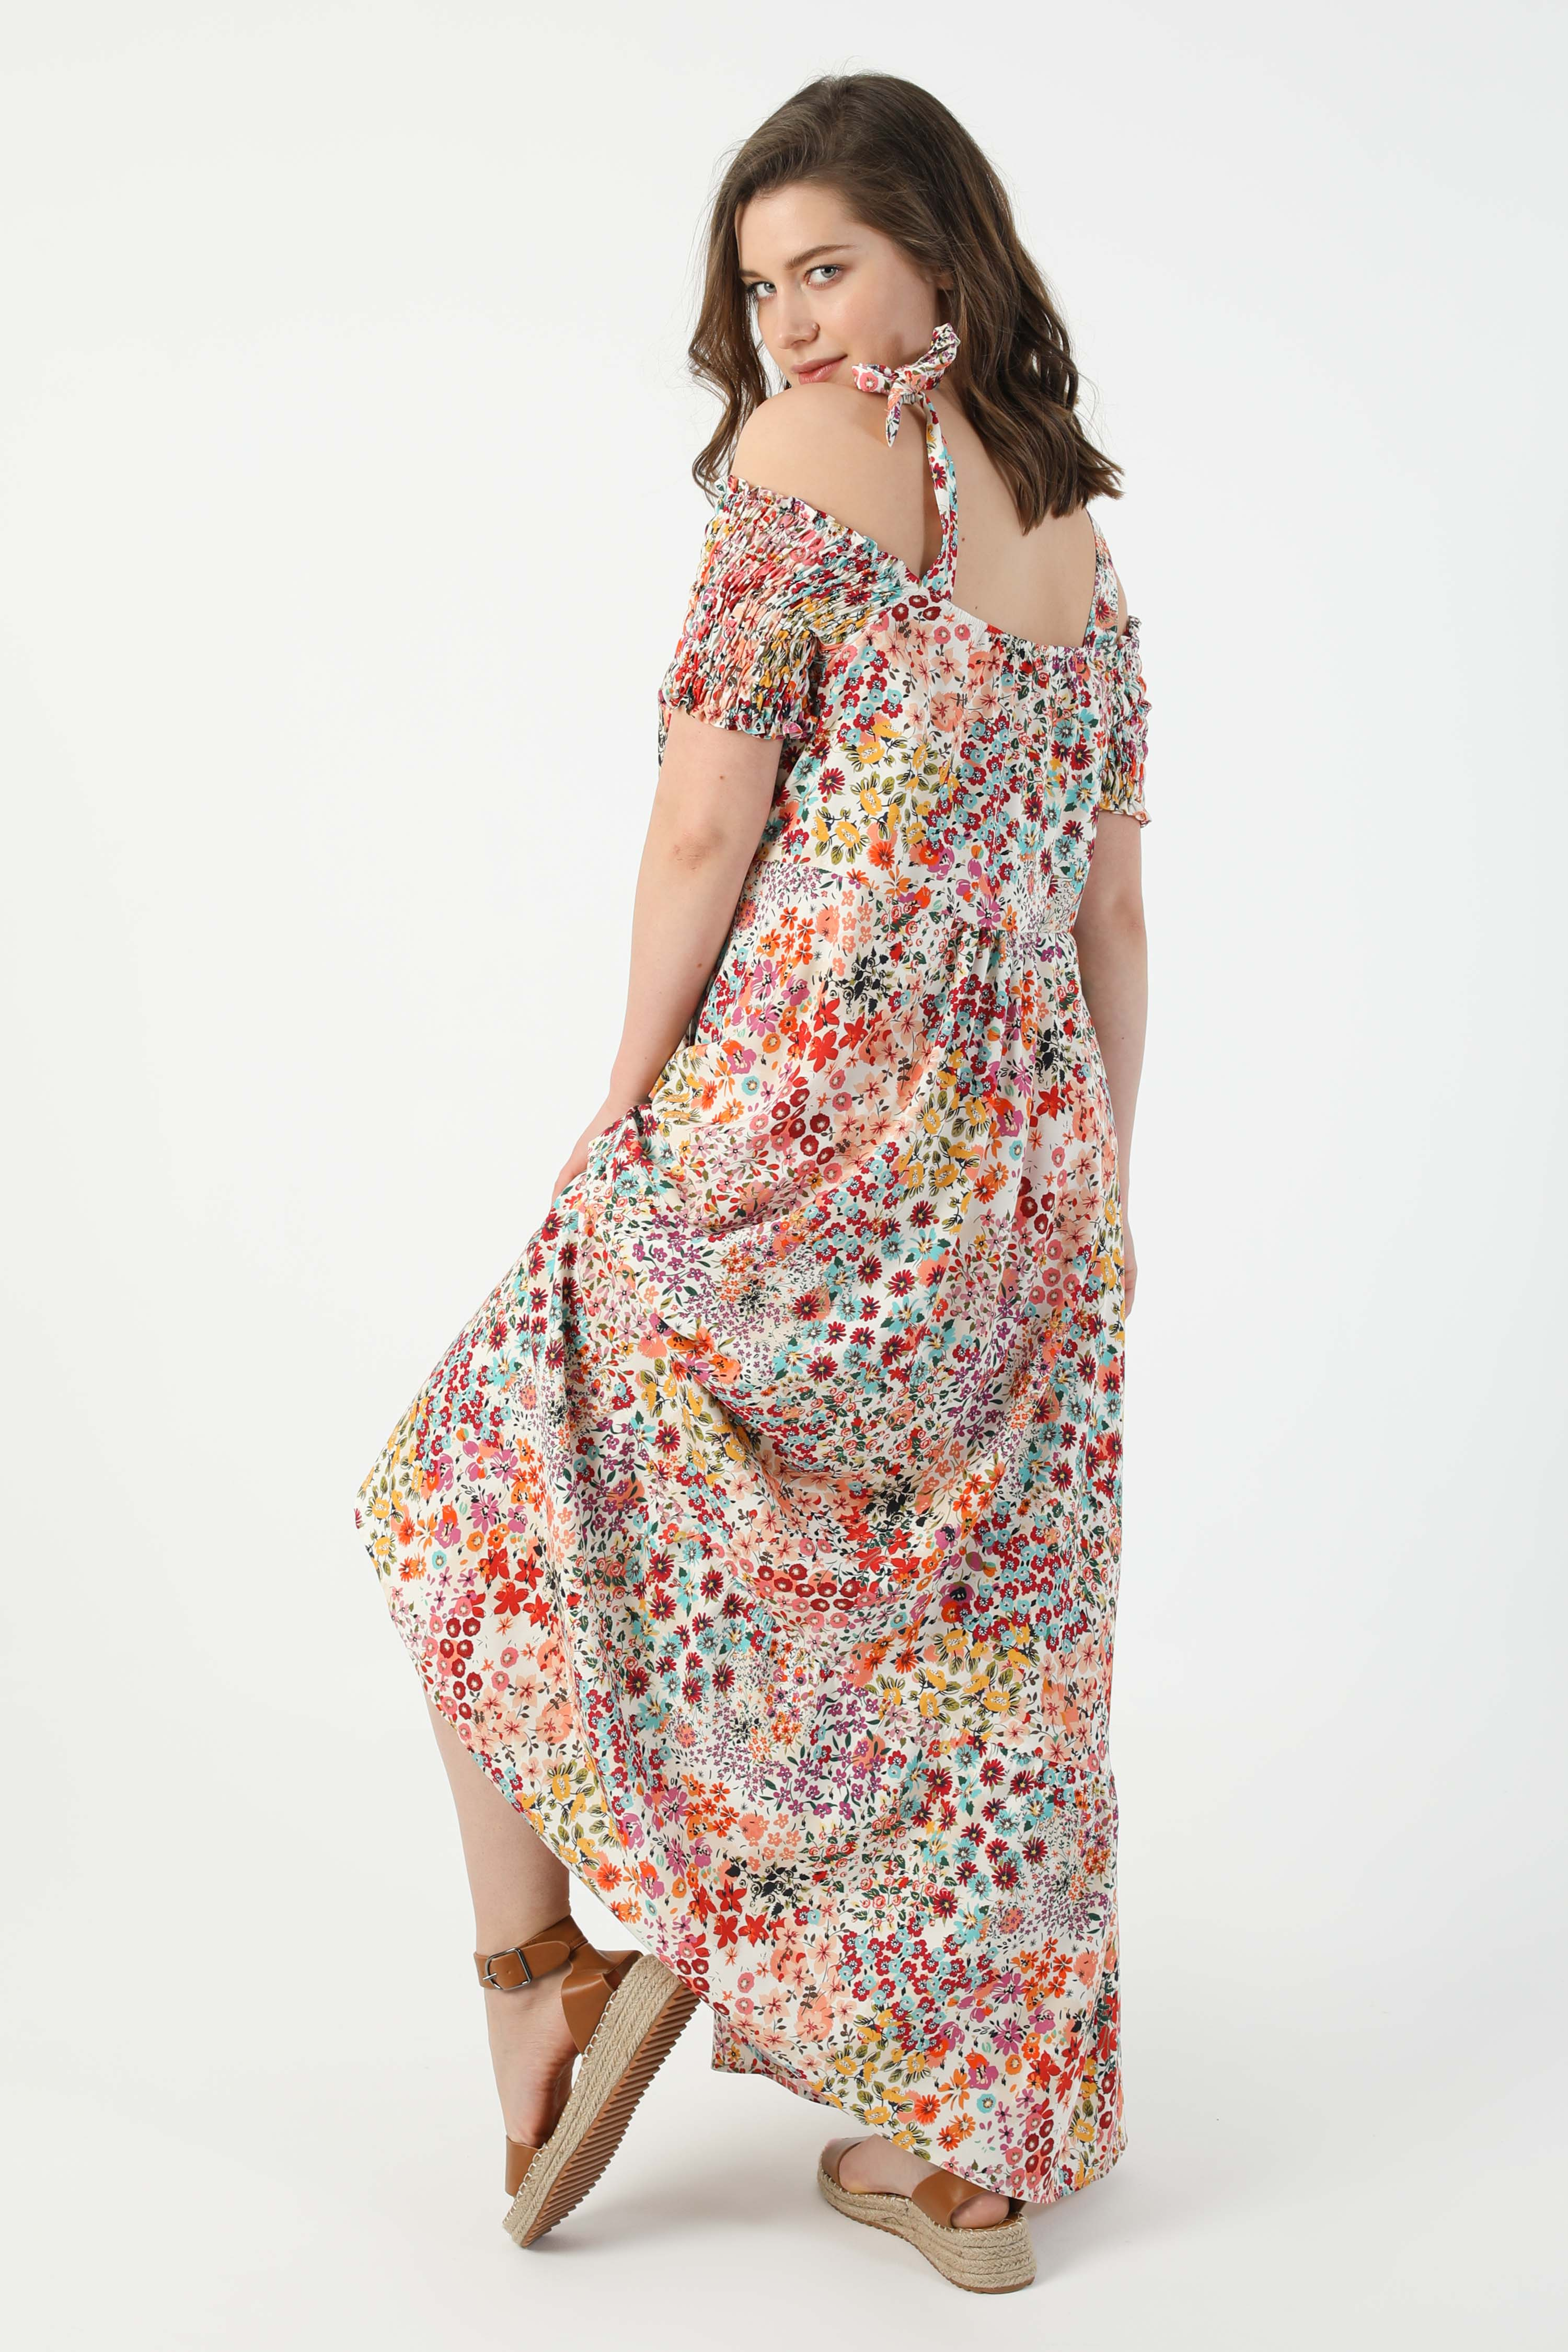 Long printed dress with straps (shipping May 10/15)